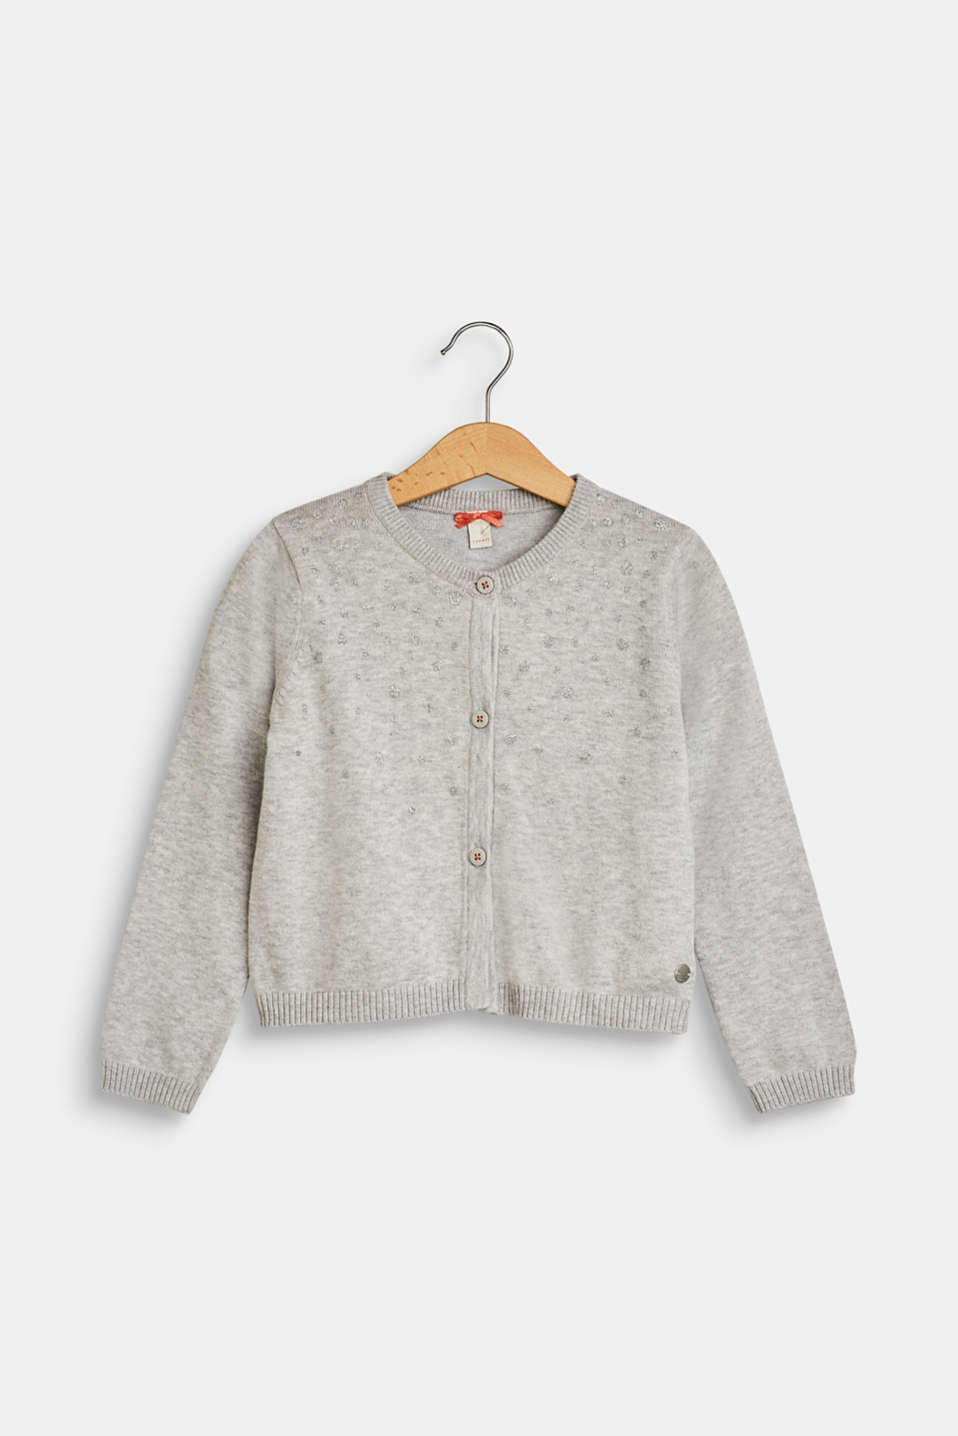 Esprit - Cardigan with glitter polka dots, 100% cotton